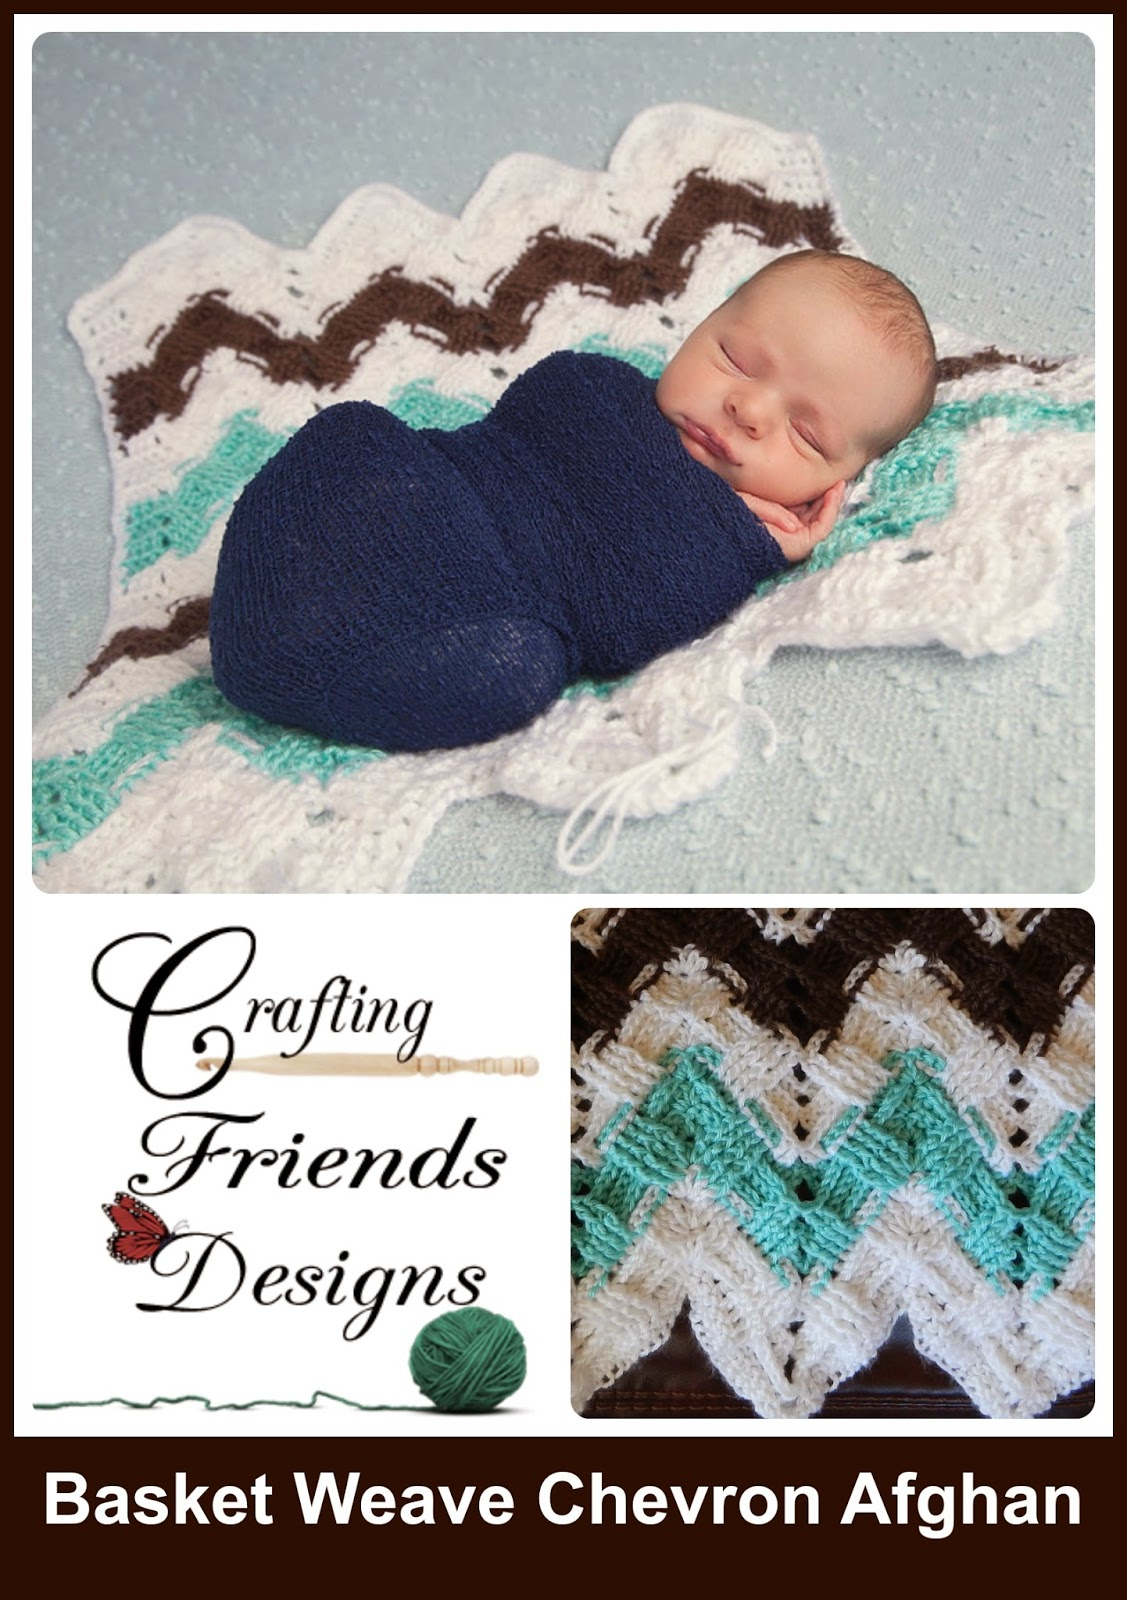 Crafting Friends Designs Basket Weave Chevron Afghan